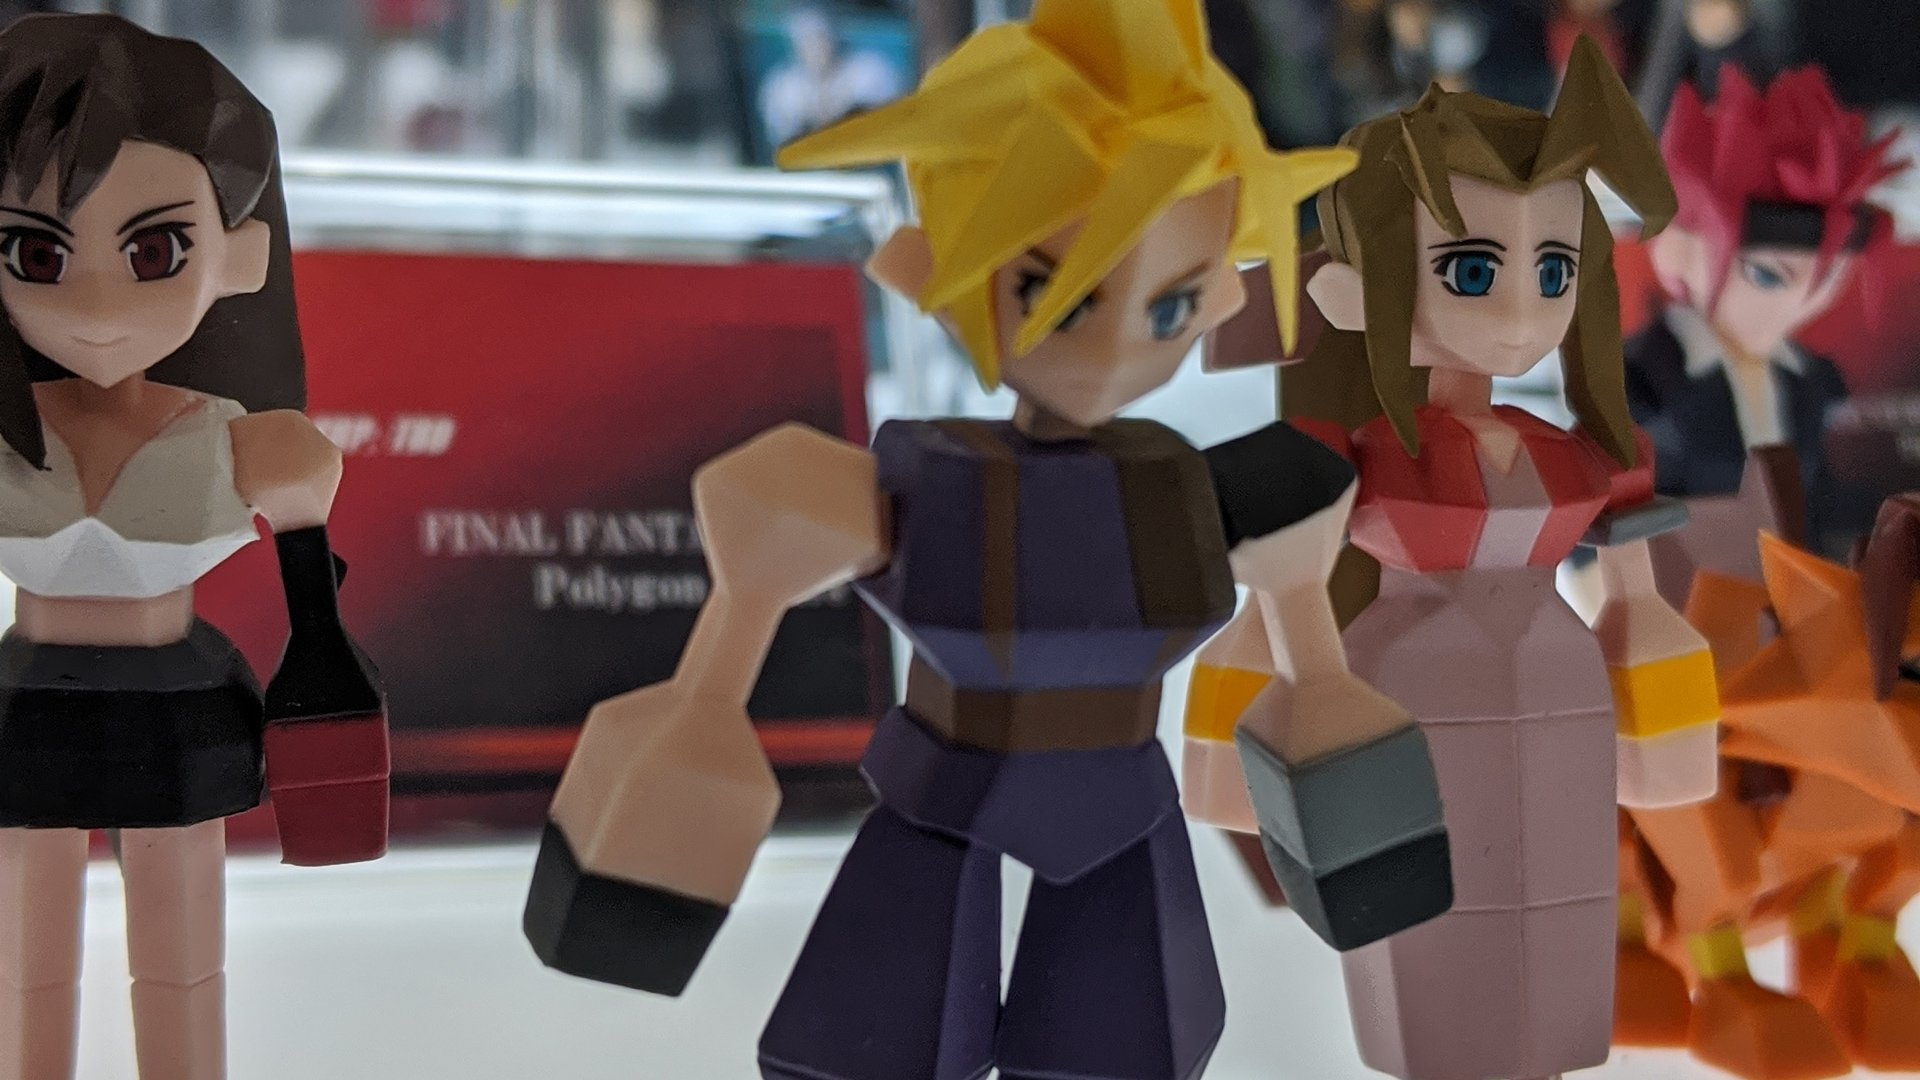 Toy Fair 2020 Square Enix Final Fantasy 7 polygon figures